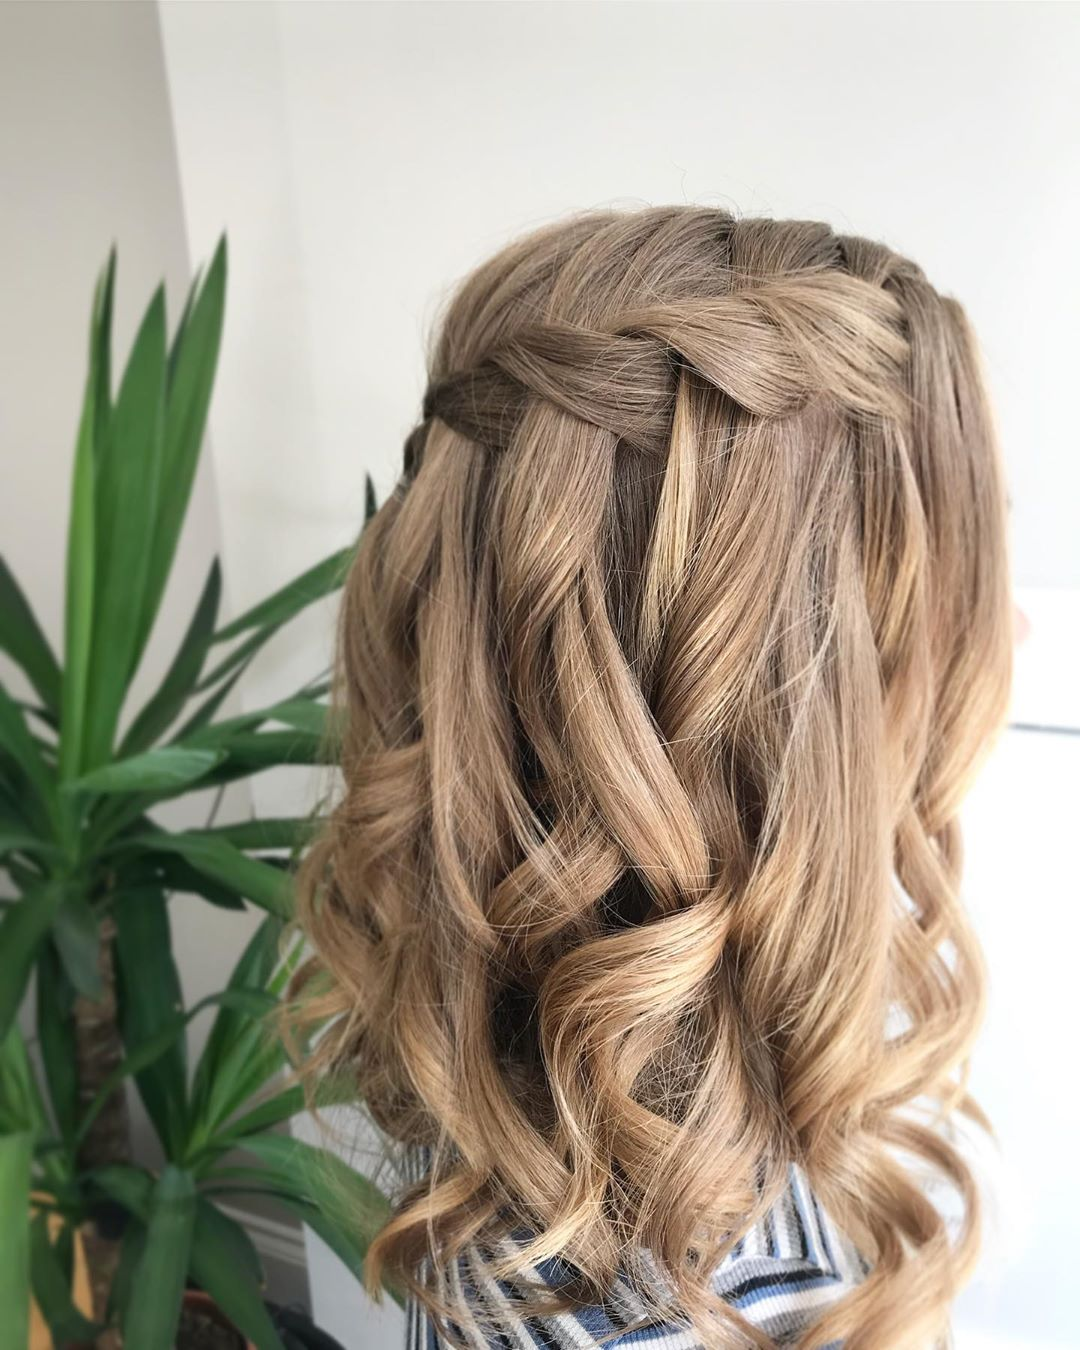 Waterfall Braid Hairstyles: 25 Gorgeous Short Up-Dos To Try In Your Next Wedding